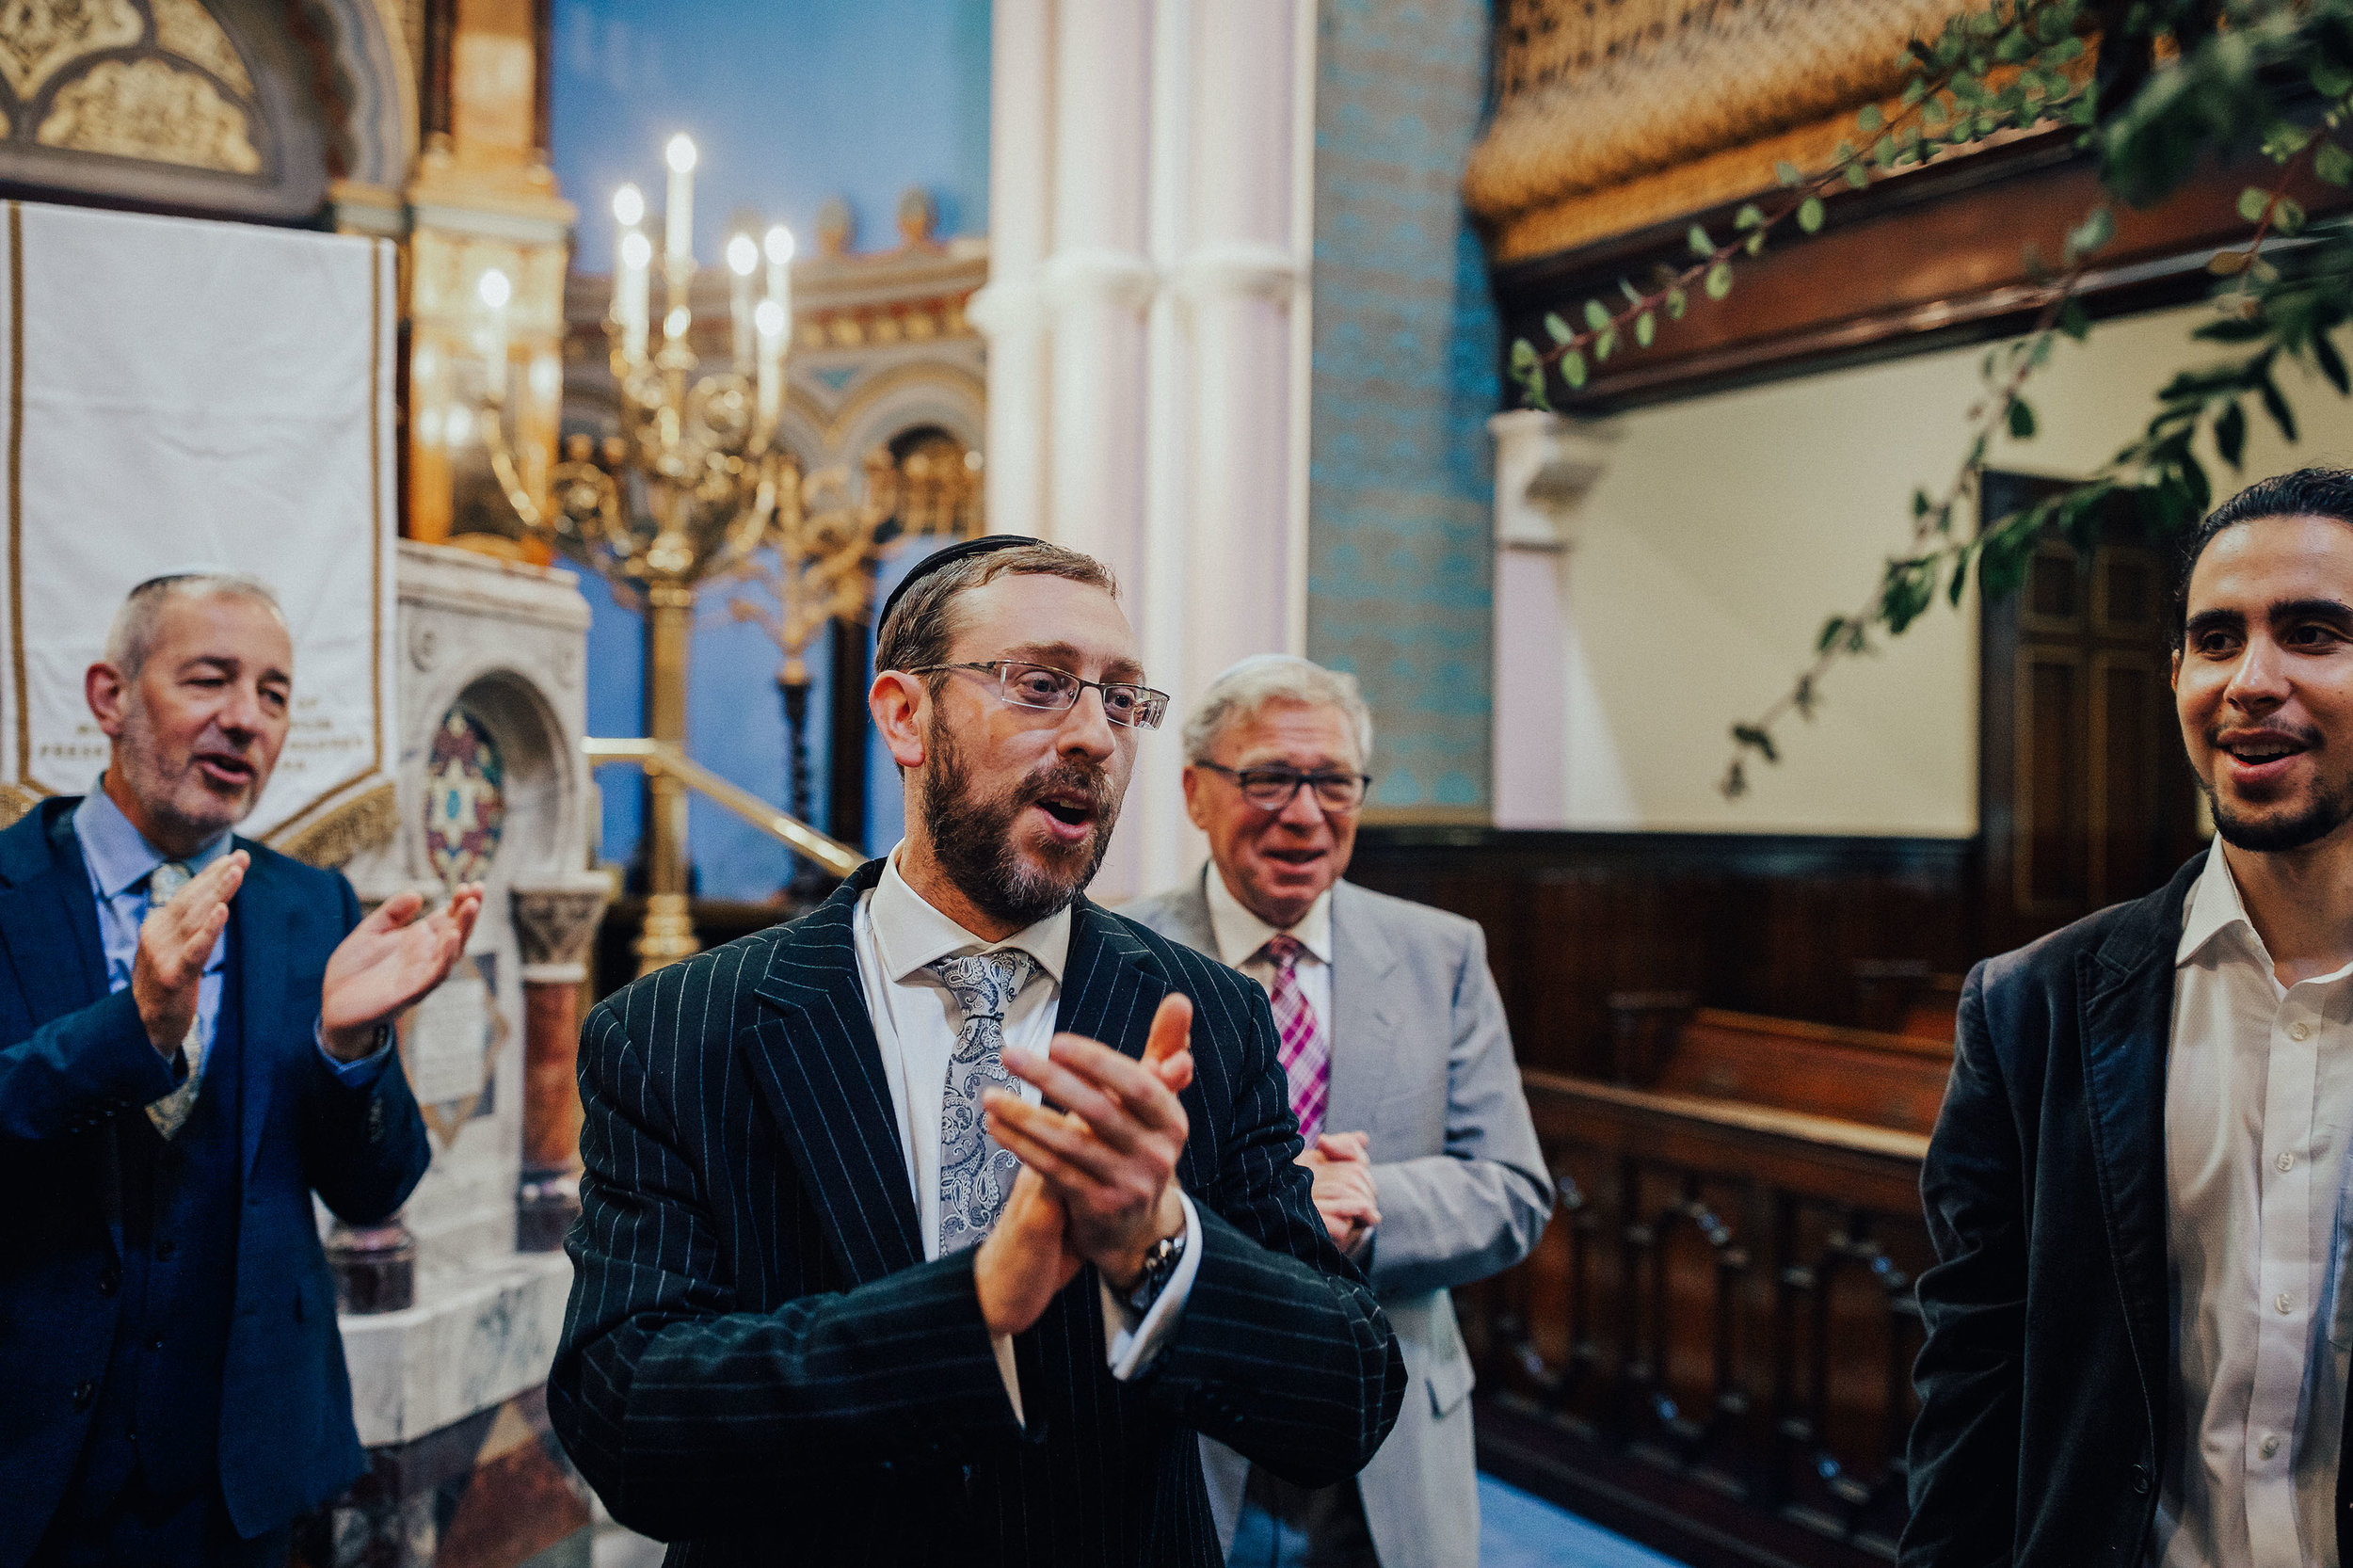 ALTERNATIVE_JEWISH_WEDDING_WEST_ON_THE_GREEN_GLASGOW_37.jpg